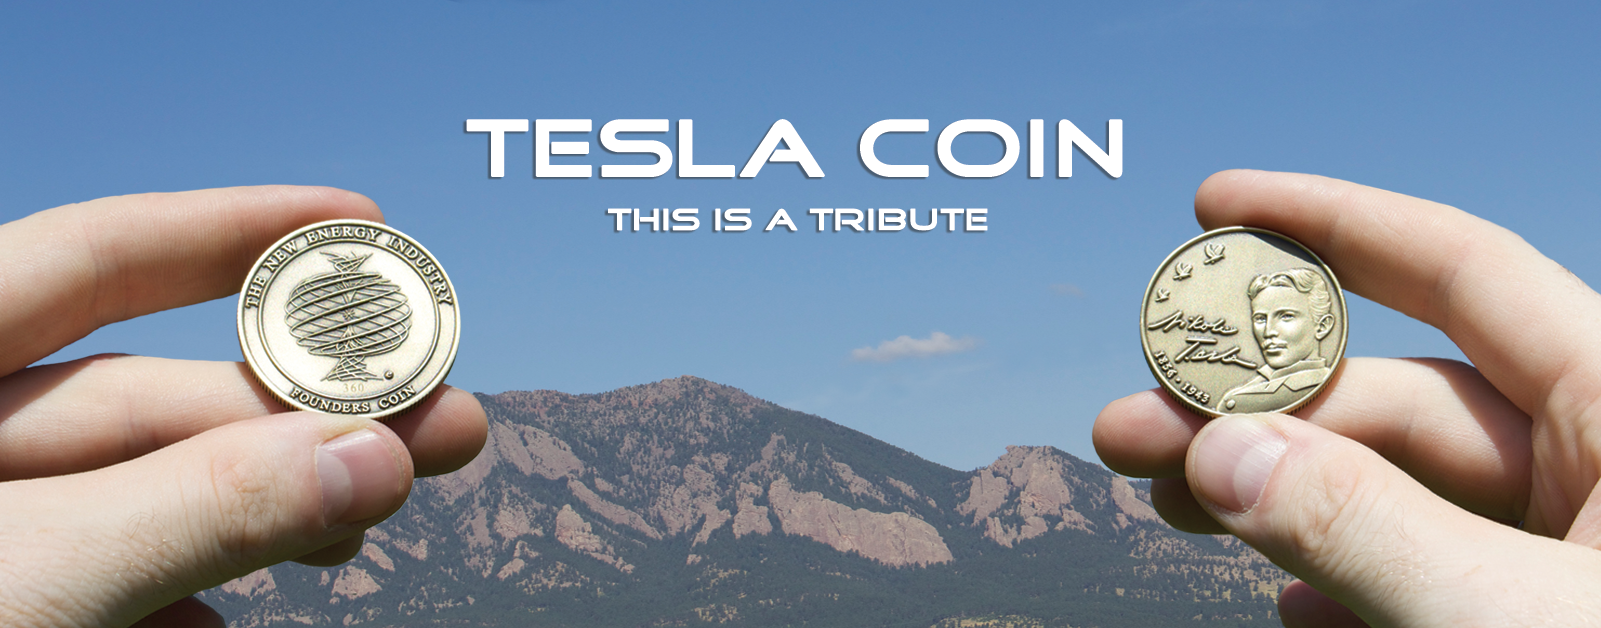 Tesla-Coin - The New Energy Industry